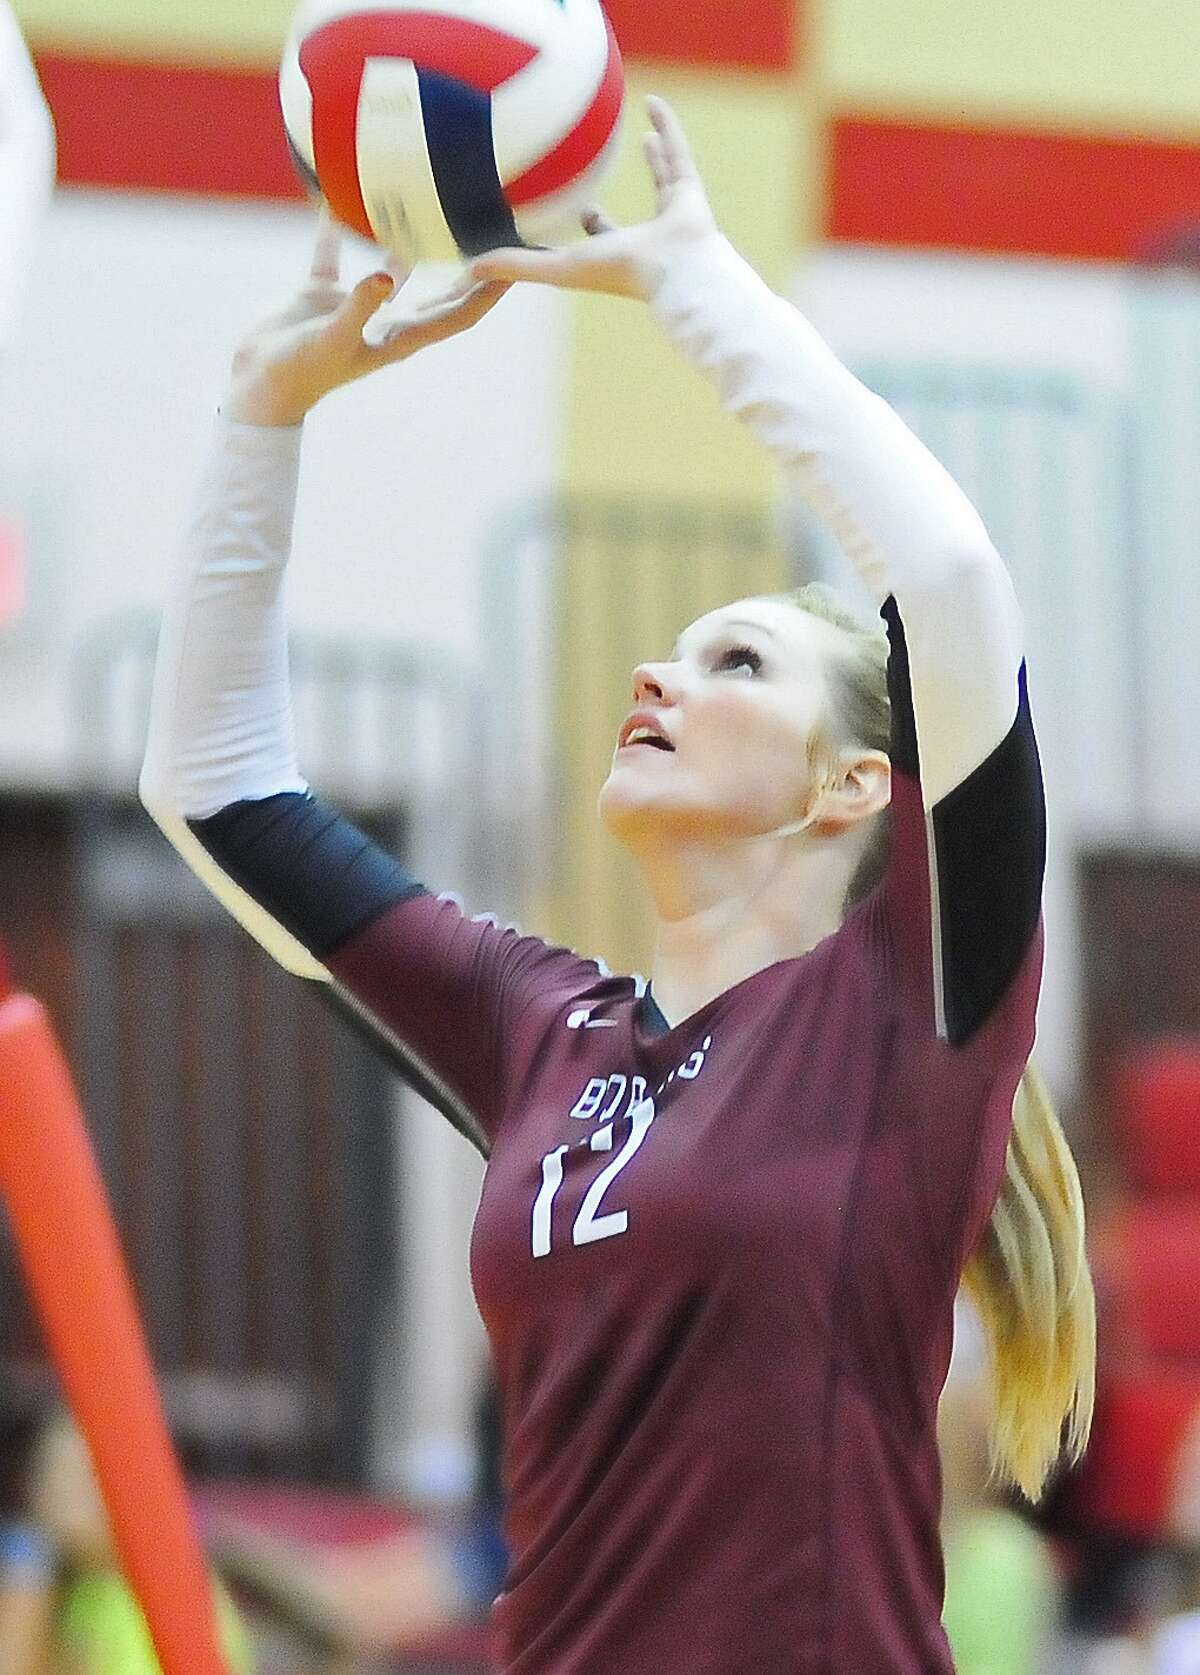 Keely Hayes (#12) competes for Cy-Fair during their game with Cy-Woods Friday 10/25/13.